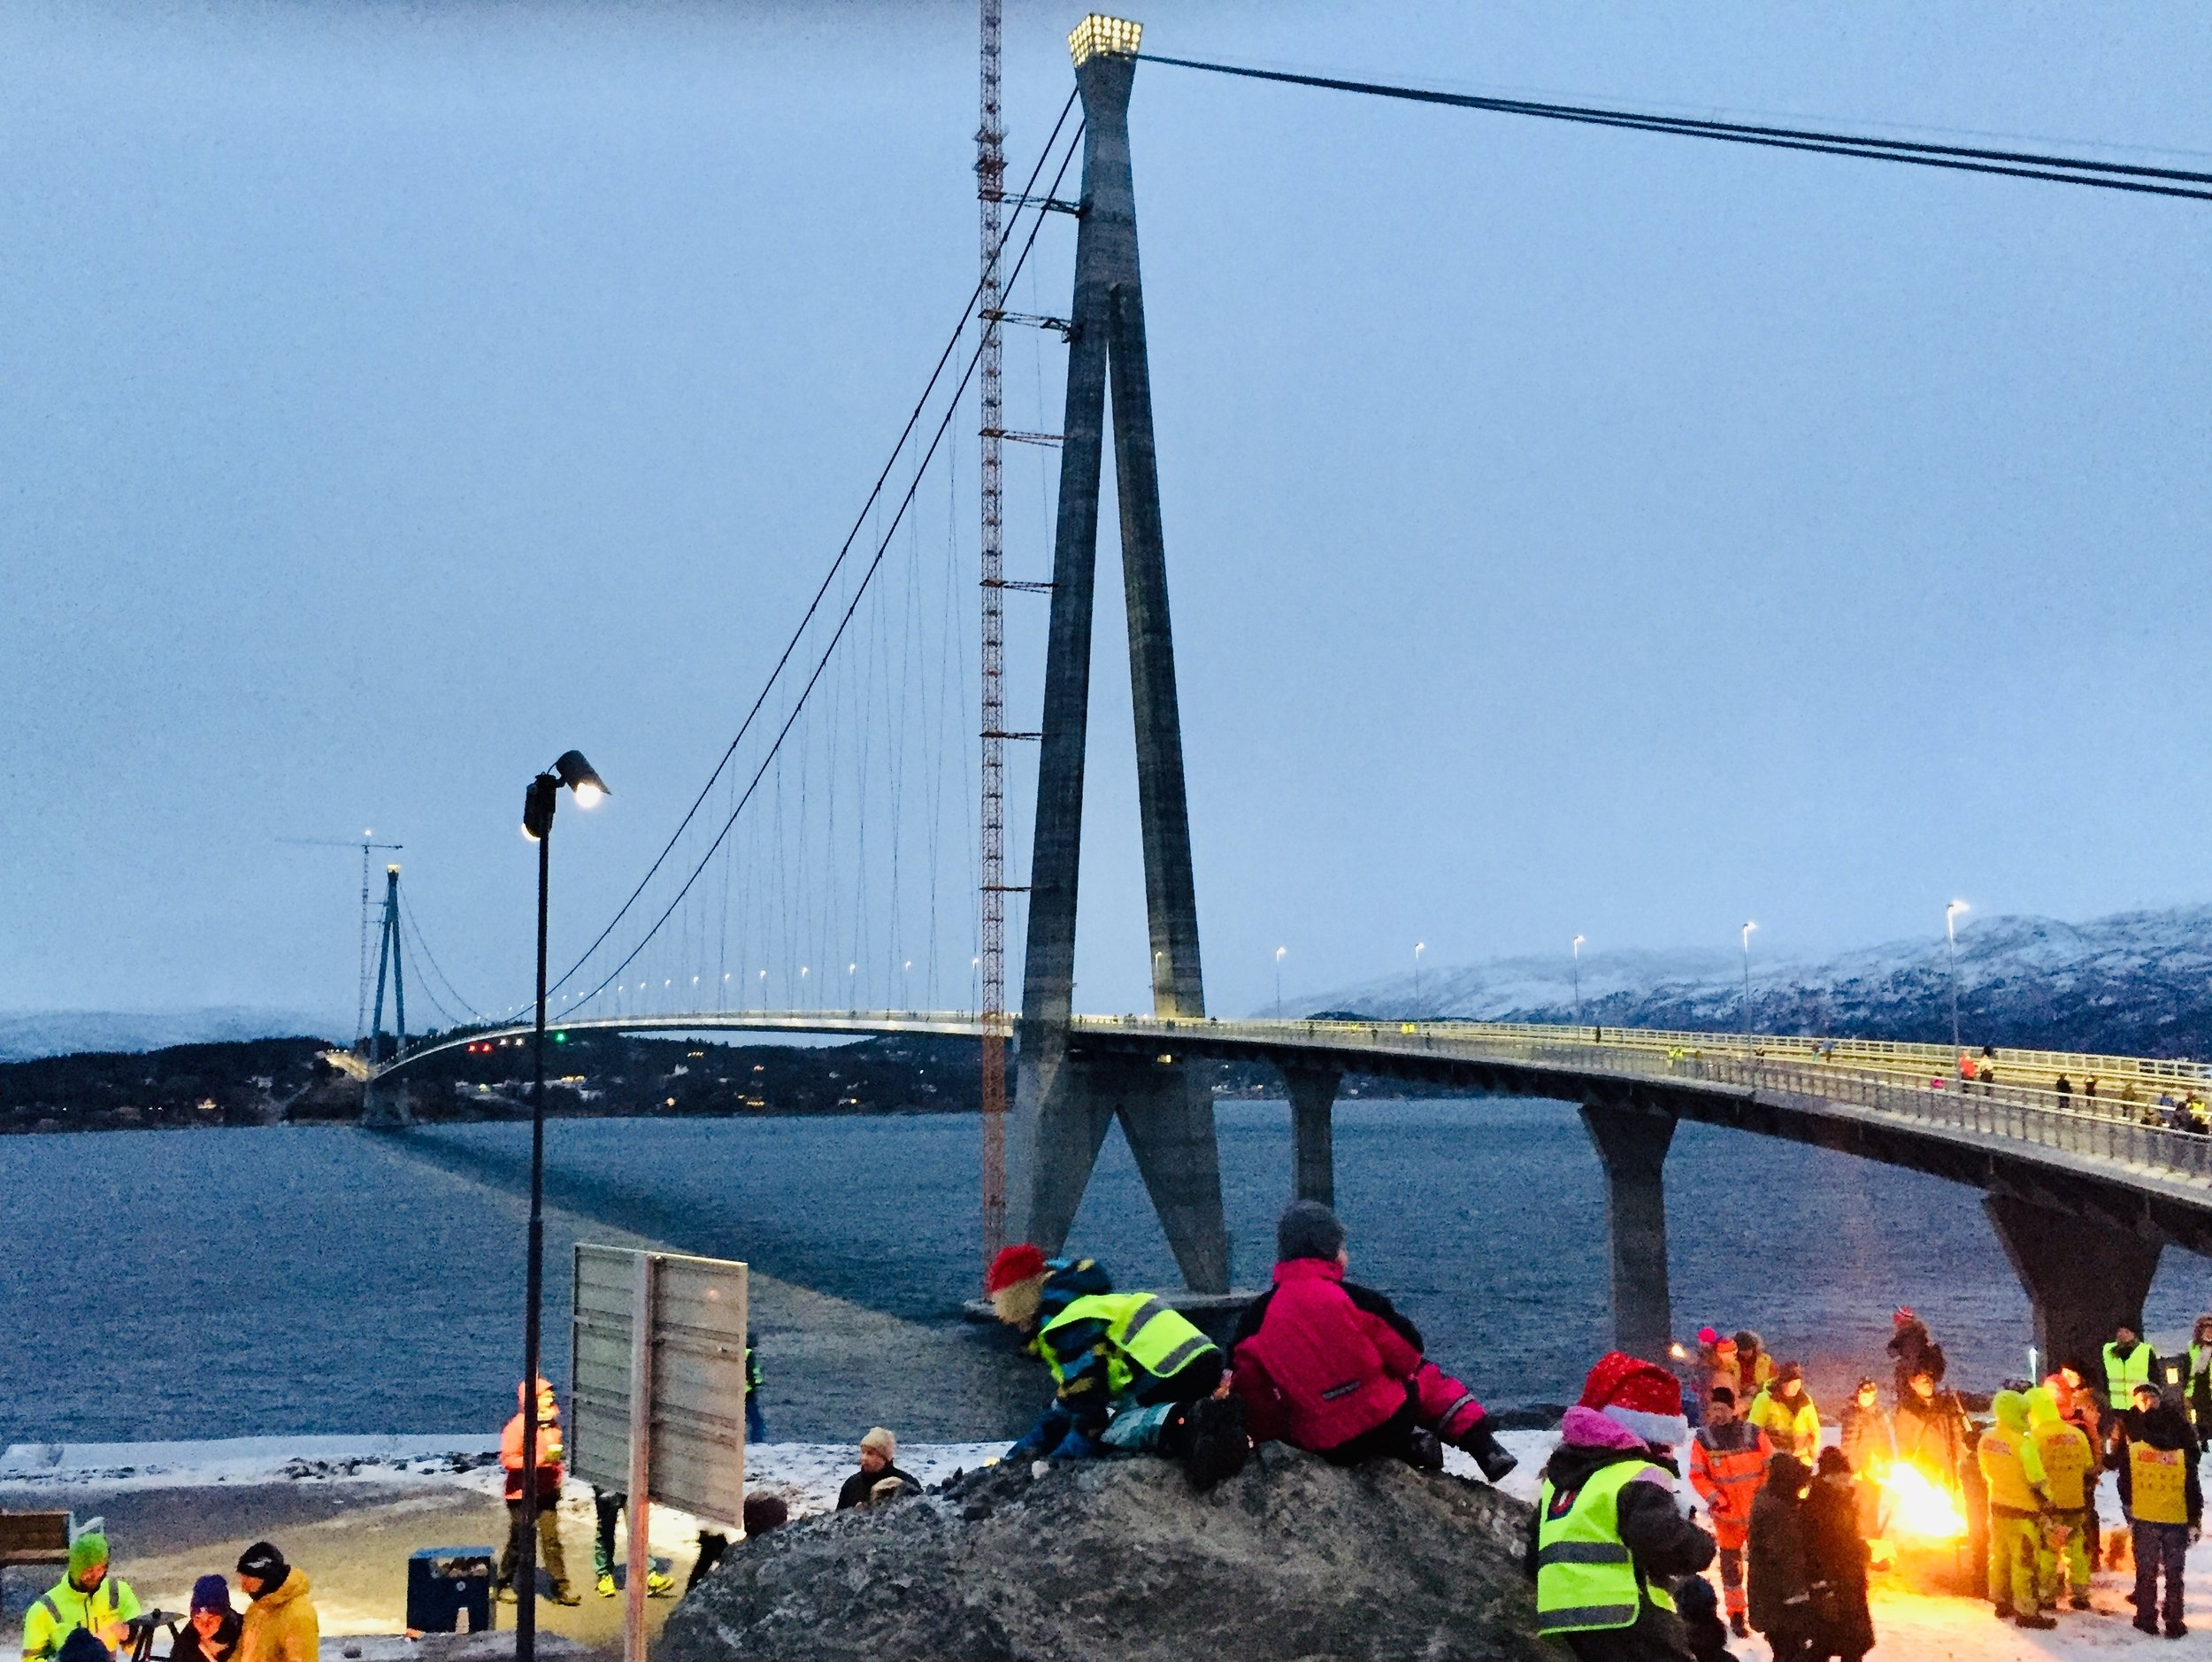 Norway's second longest suspension bridge reduces the distance between Narvik and Bjerkvik by 18 km.